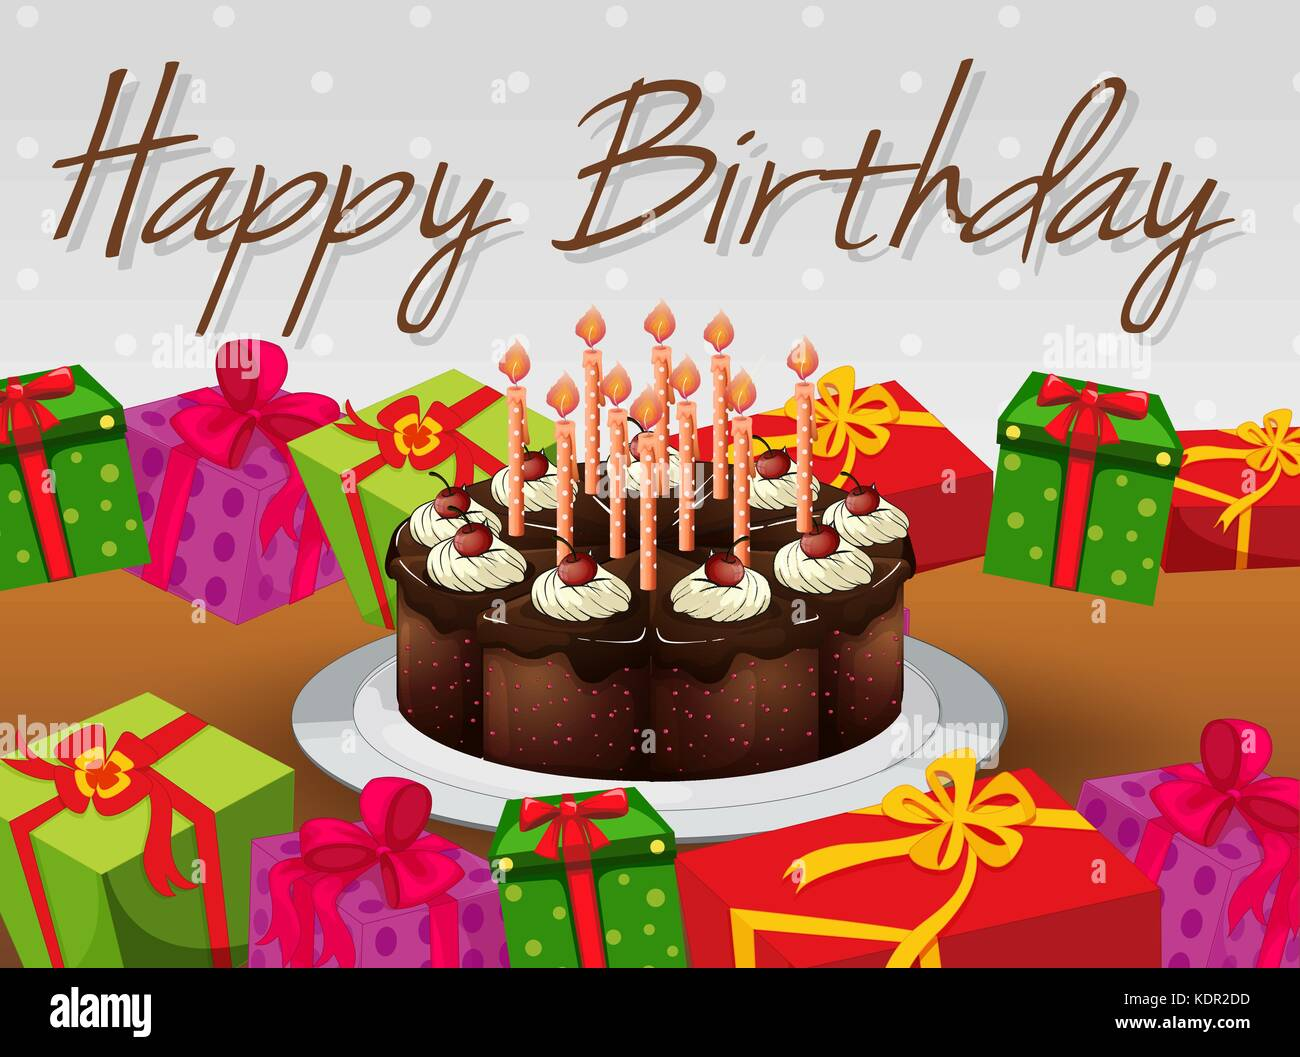 Astonishing Happy Birthday Card Template With Cake And Presents Illustration Funny Birthday Cards Online Sheoxdamsfinfo